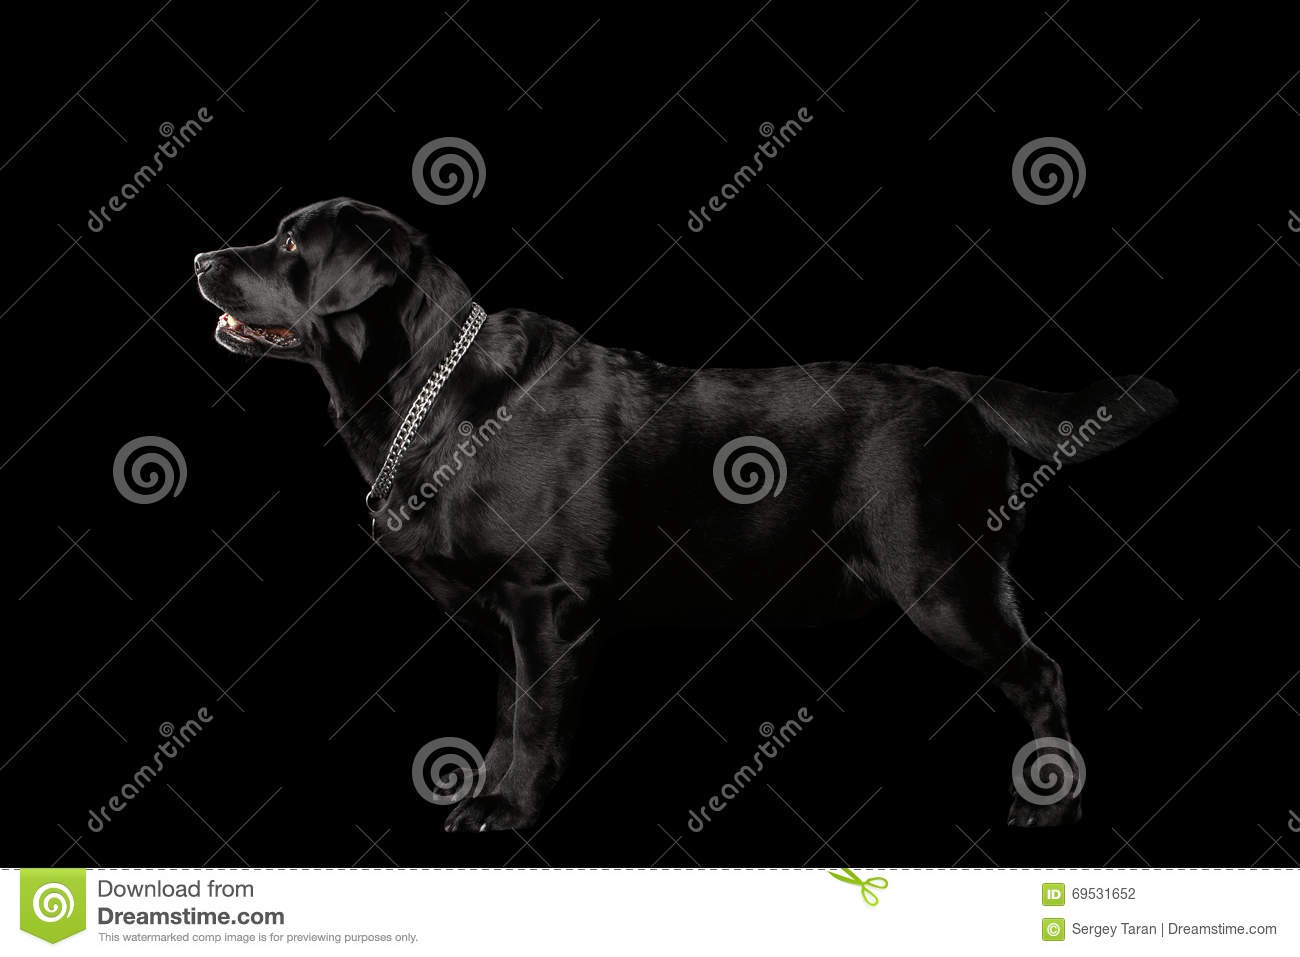 Download Muscle Labrador Dog Standing In Profile View, Isolated On Black Stock Photo - Image of labrador, eyes: 69531652